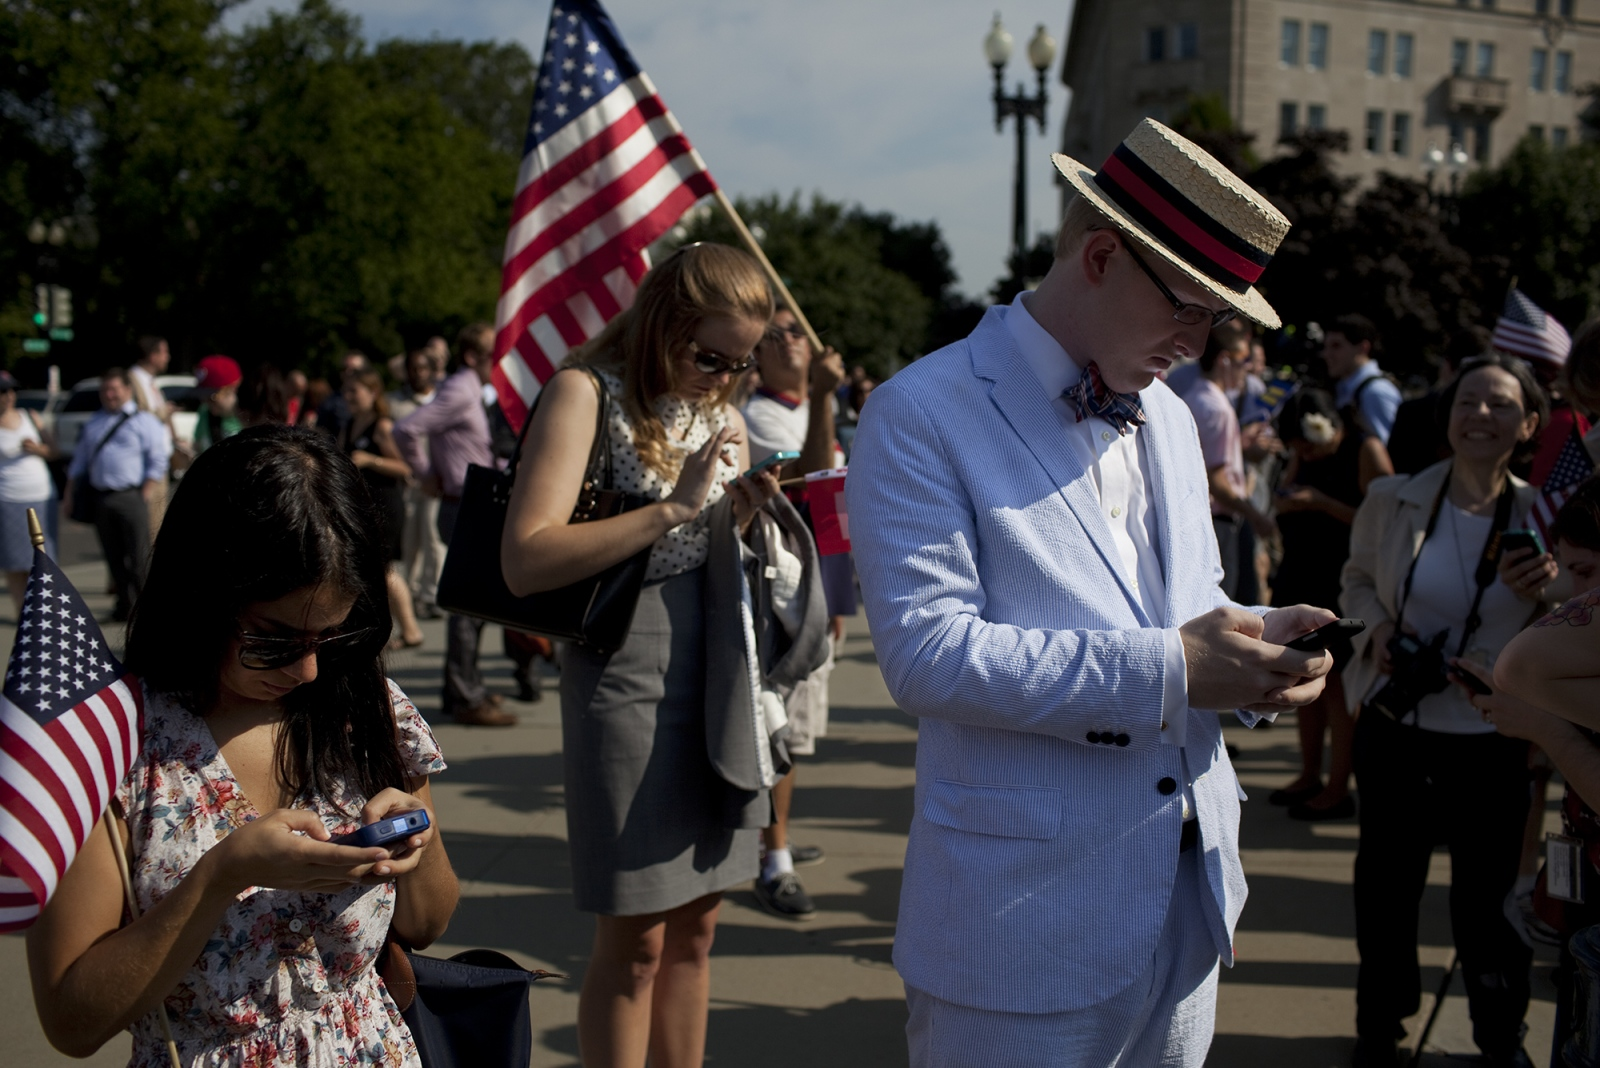 Checking tweets outside the Supreme Court.